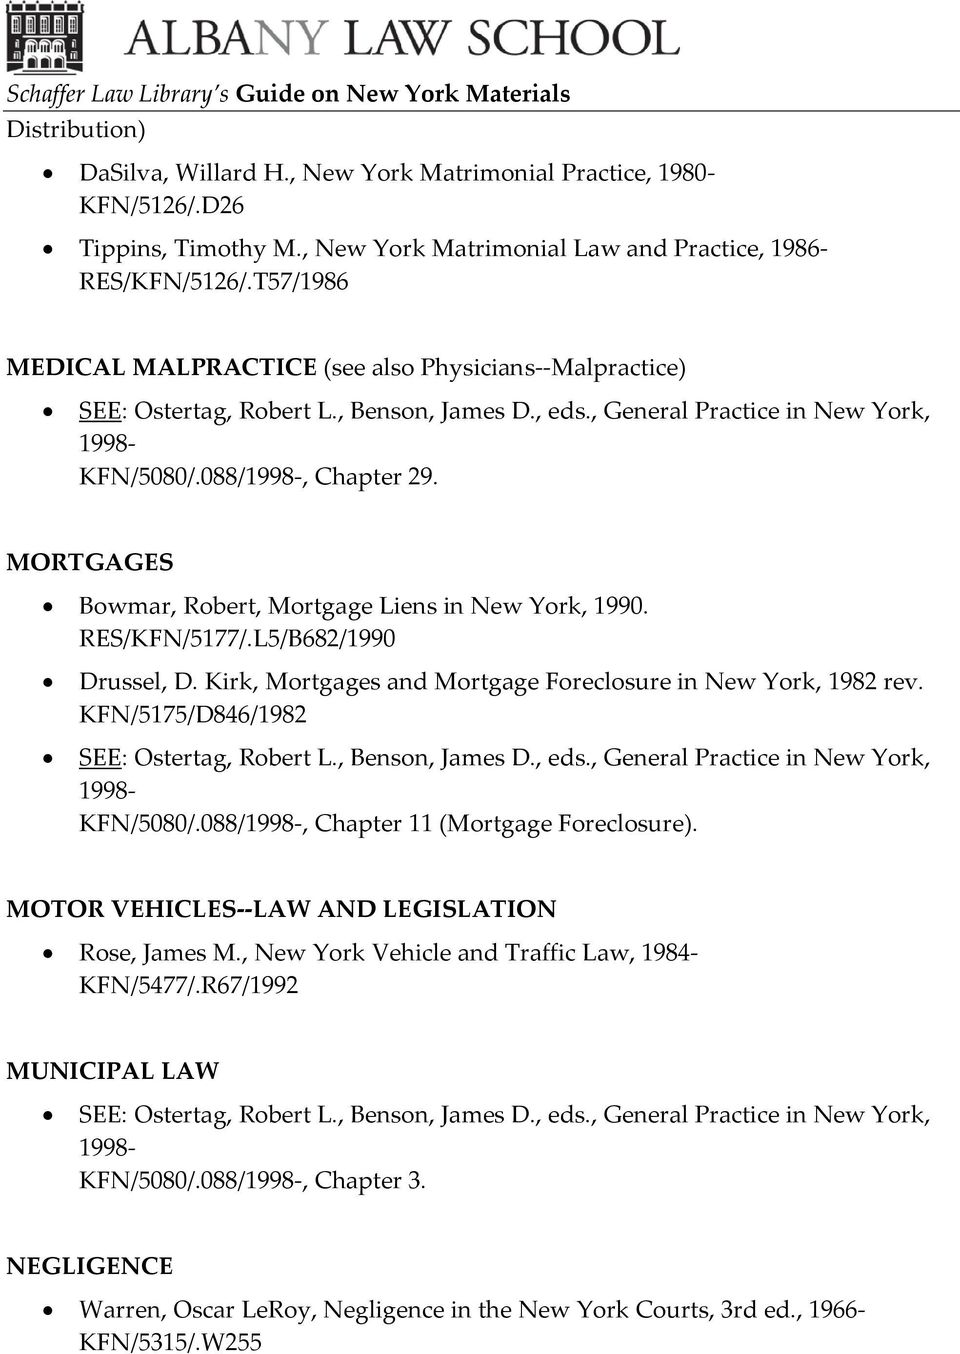 L5/B682/1990 Drussel, D. Kirk, Mortgages and Mortgage Foreclosure in New York, 1982 rev. KFN/5175/D846/1982 KFN/5080/.088/, Chapter 11 (Mortgage Foreclosure).